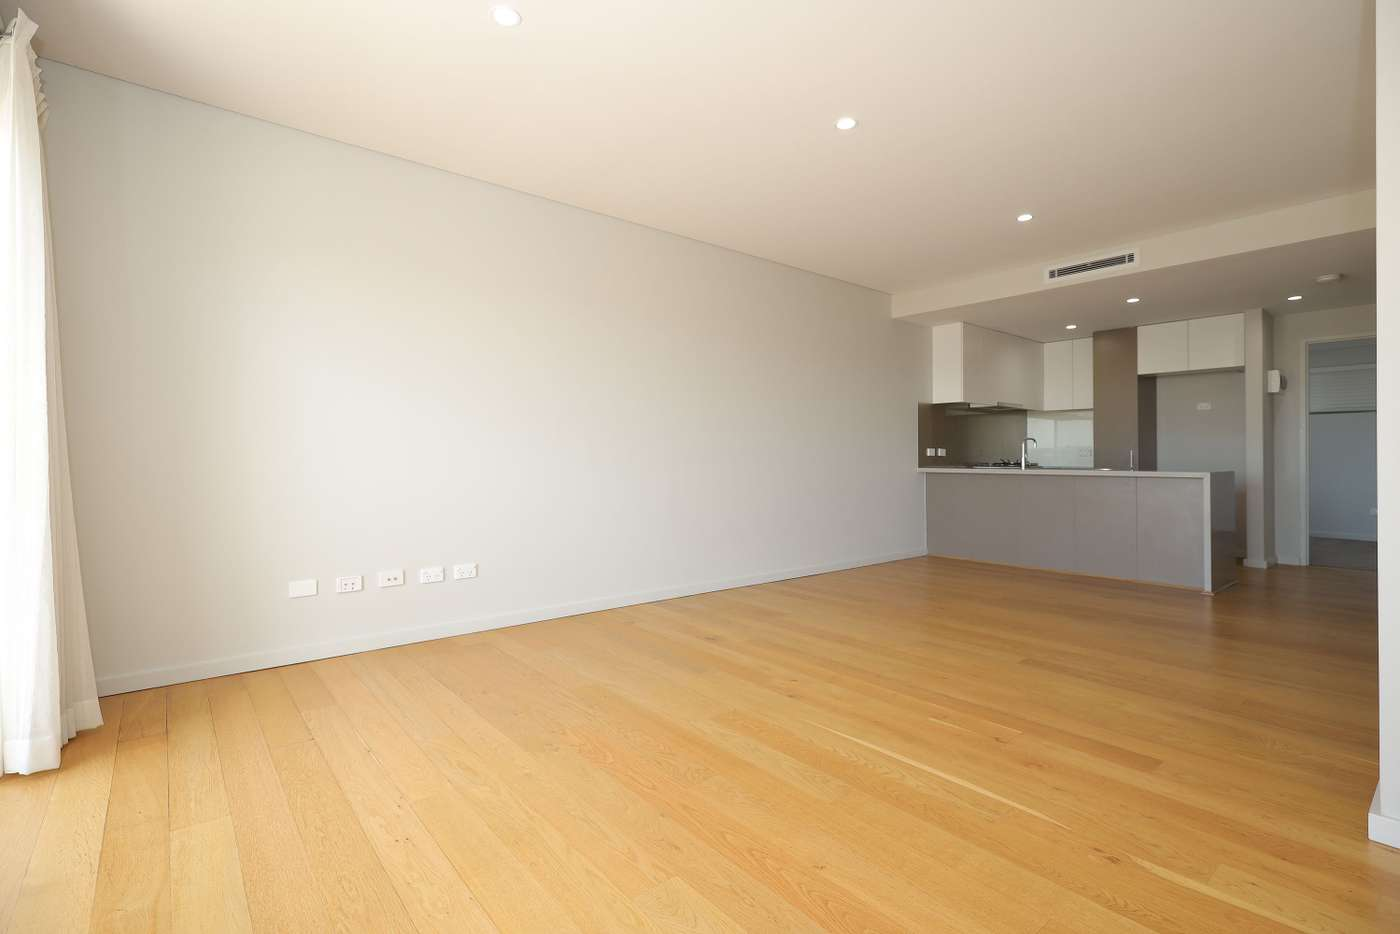 Seventh view of Homely house listing, 16/1 Albert Street, North Perth WA 6006